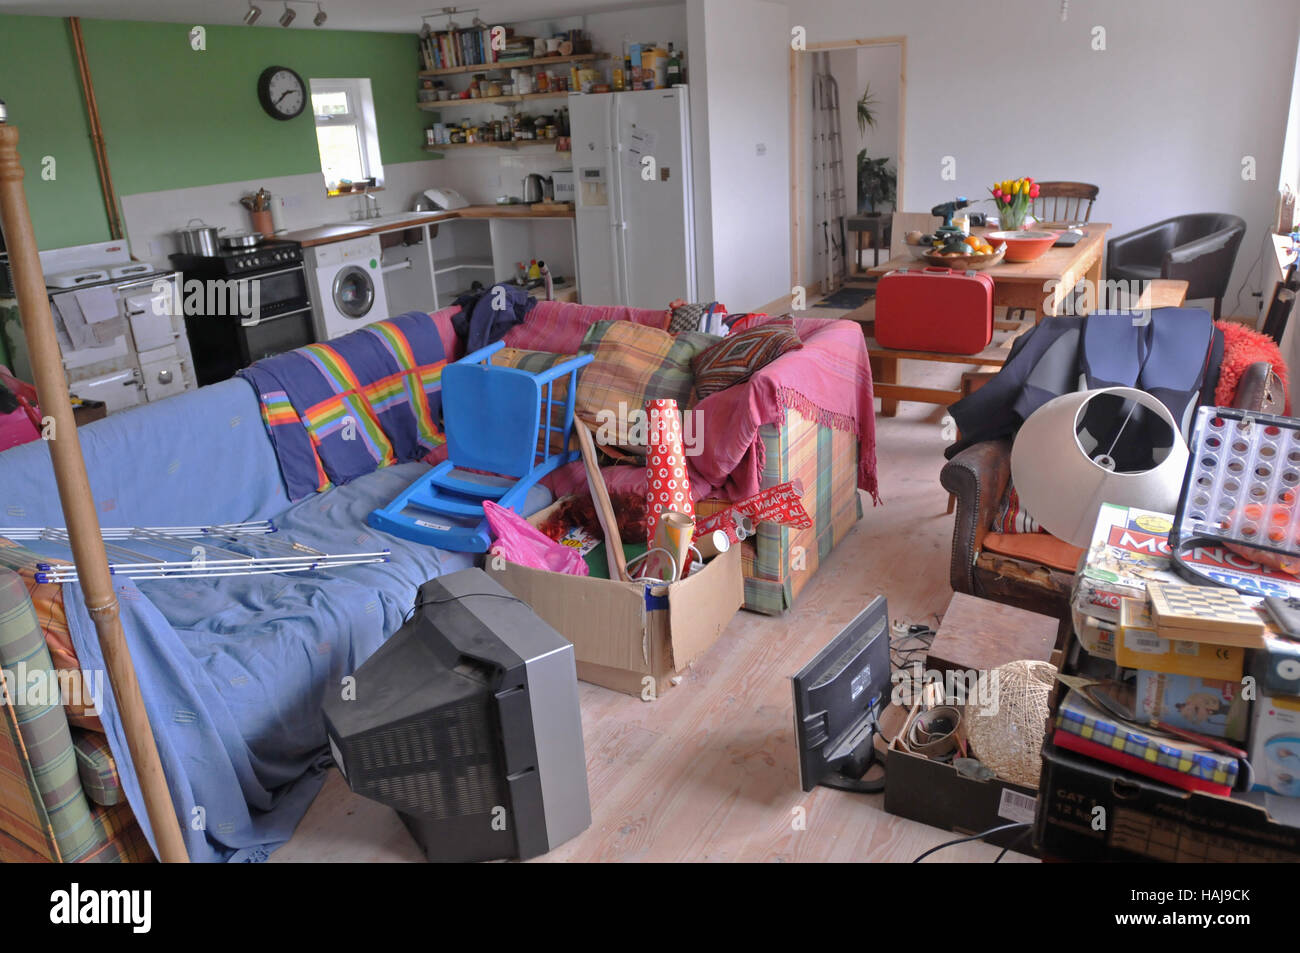 The contents of a house just unpacked. - Stock Image